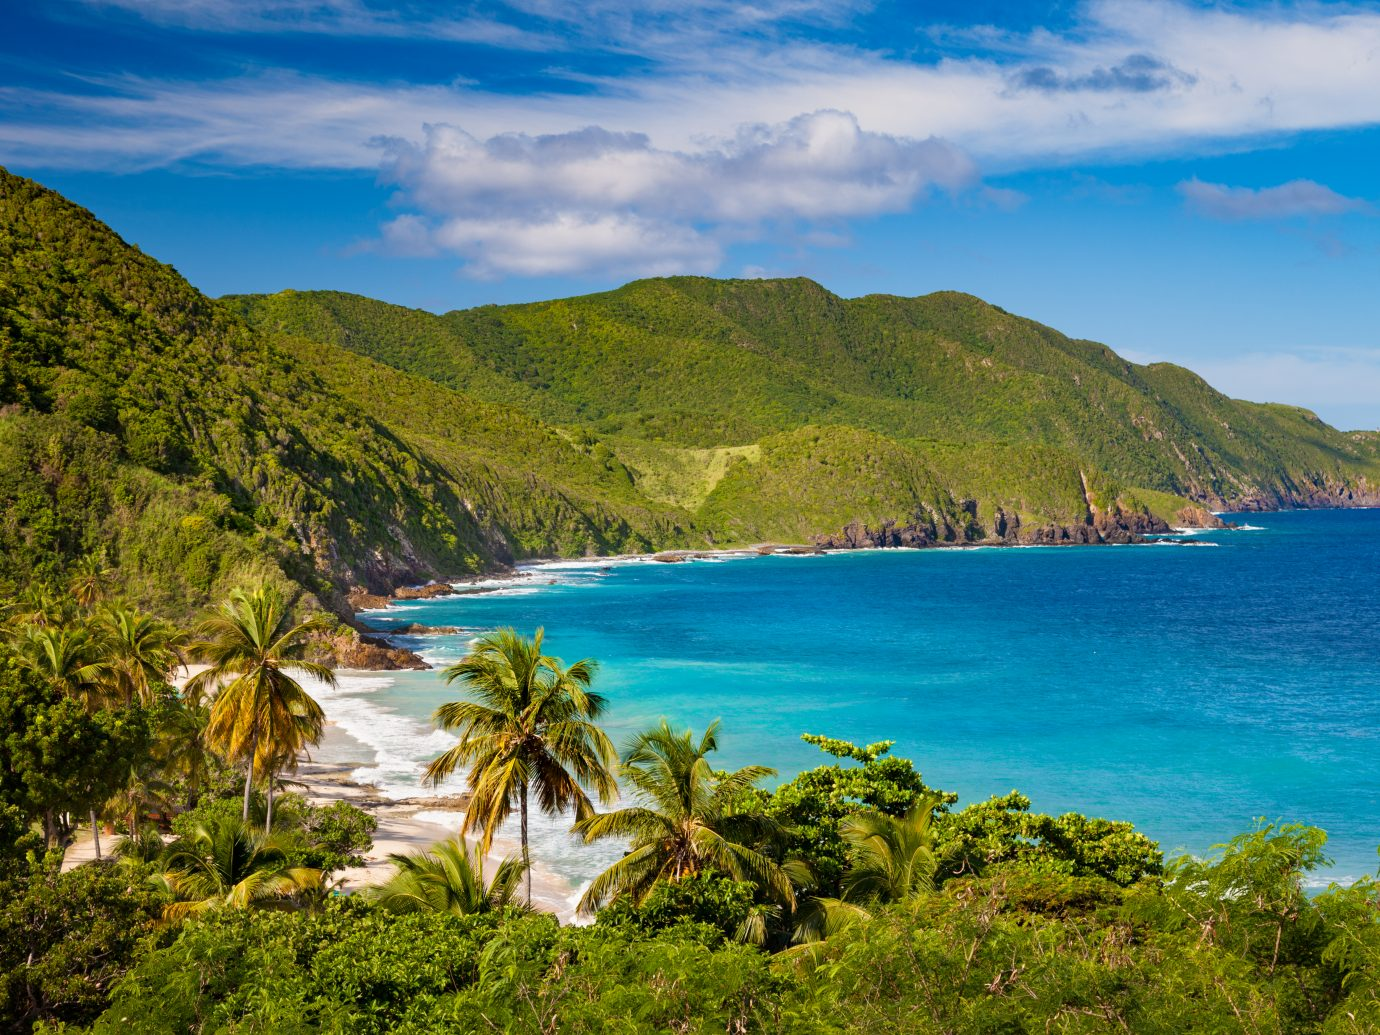 panoramic view of Carambola Beach, St.Croix, US Virgin Islands